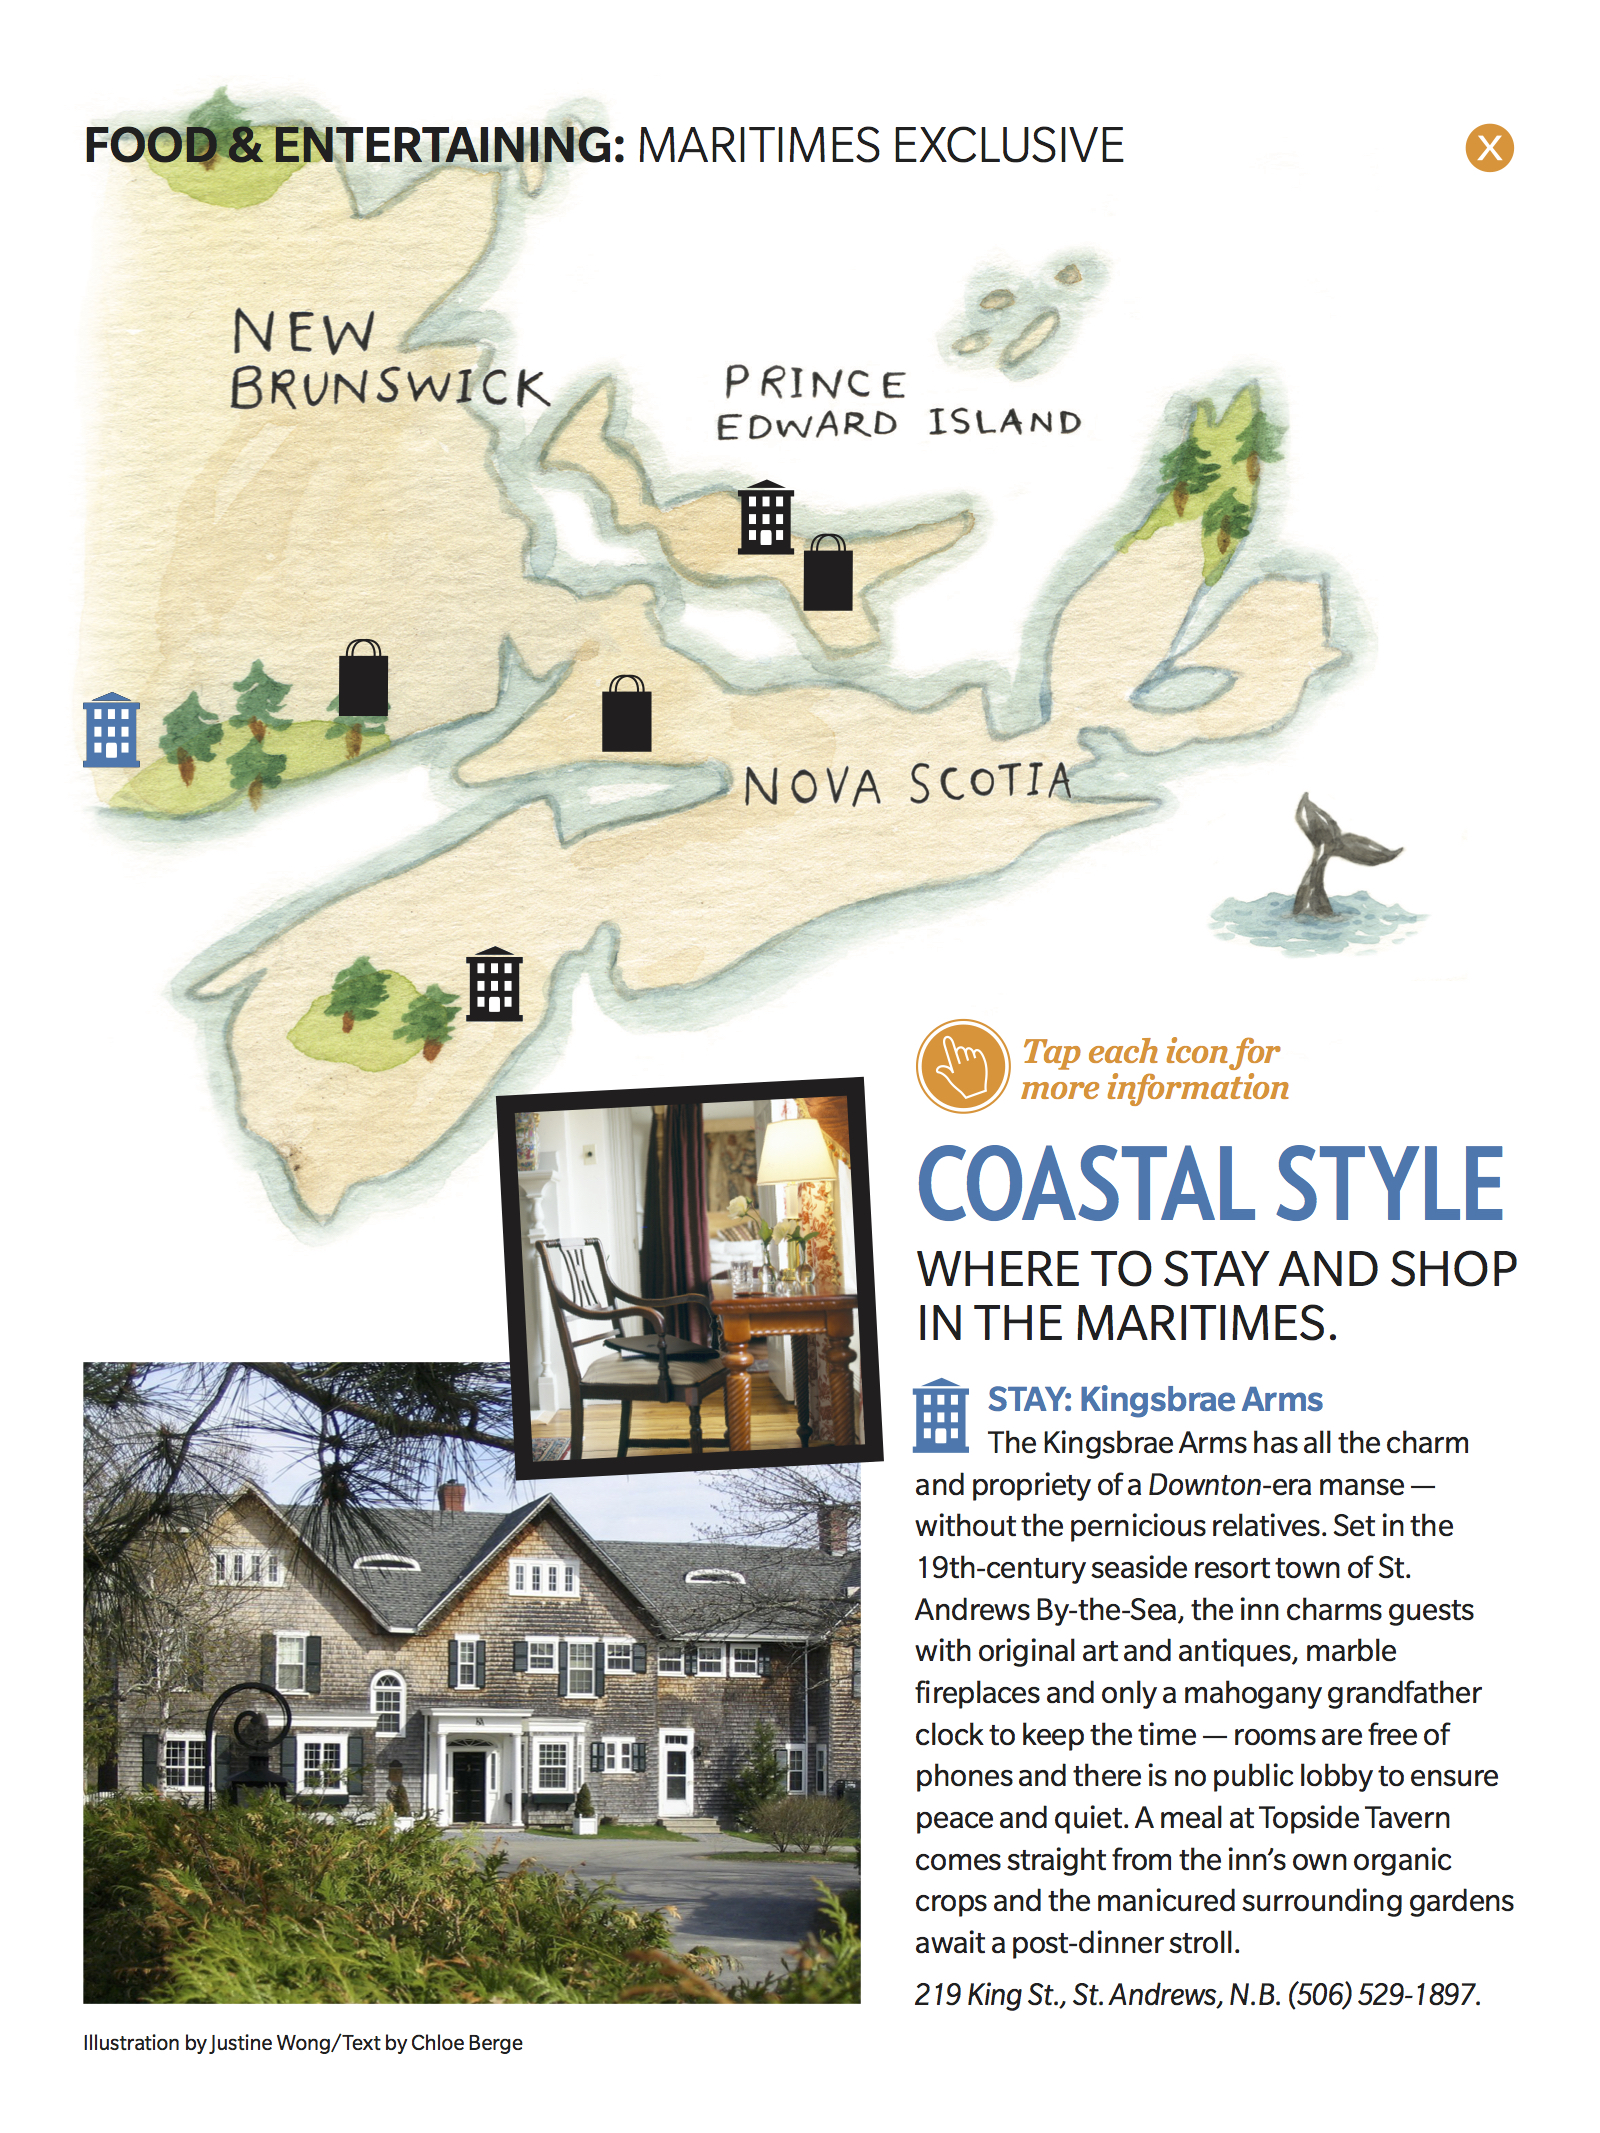 East Coast Travel Guide_House & Home Magazine iPad Edition_July 20141.jpg